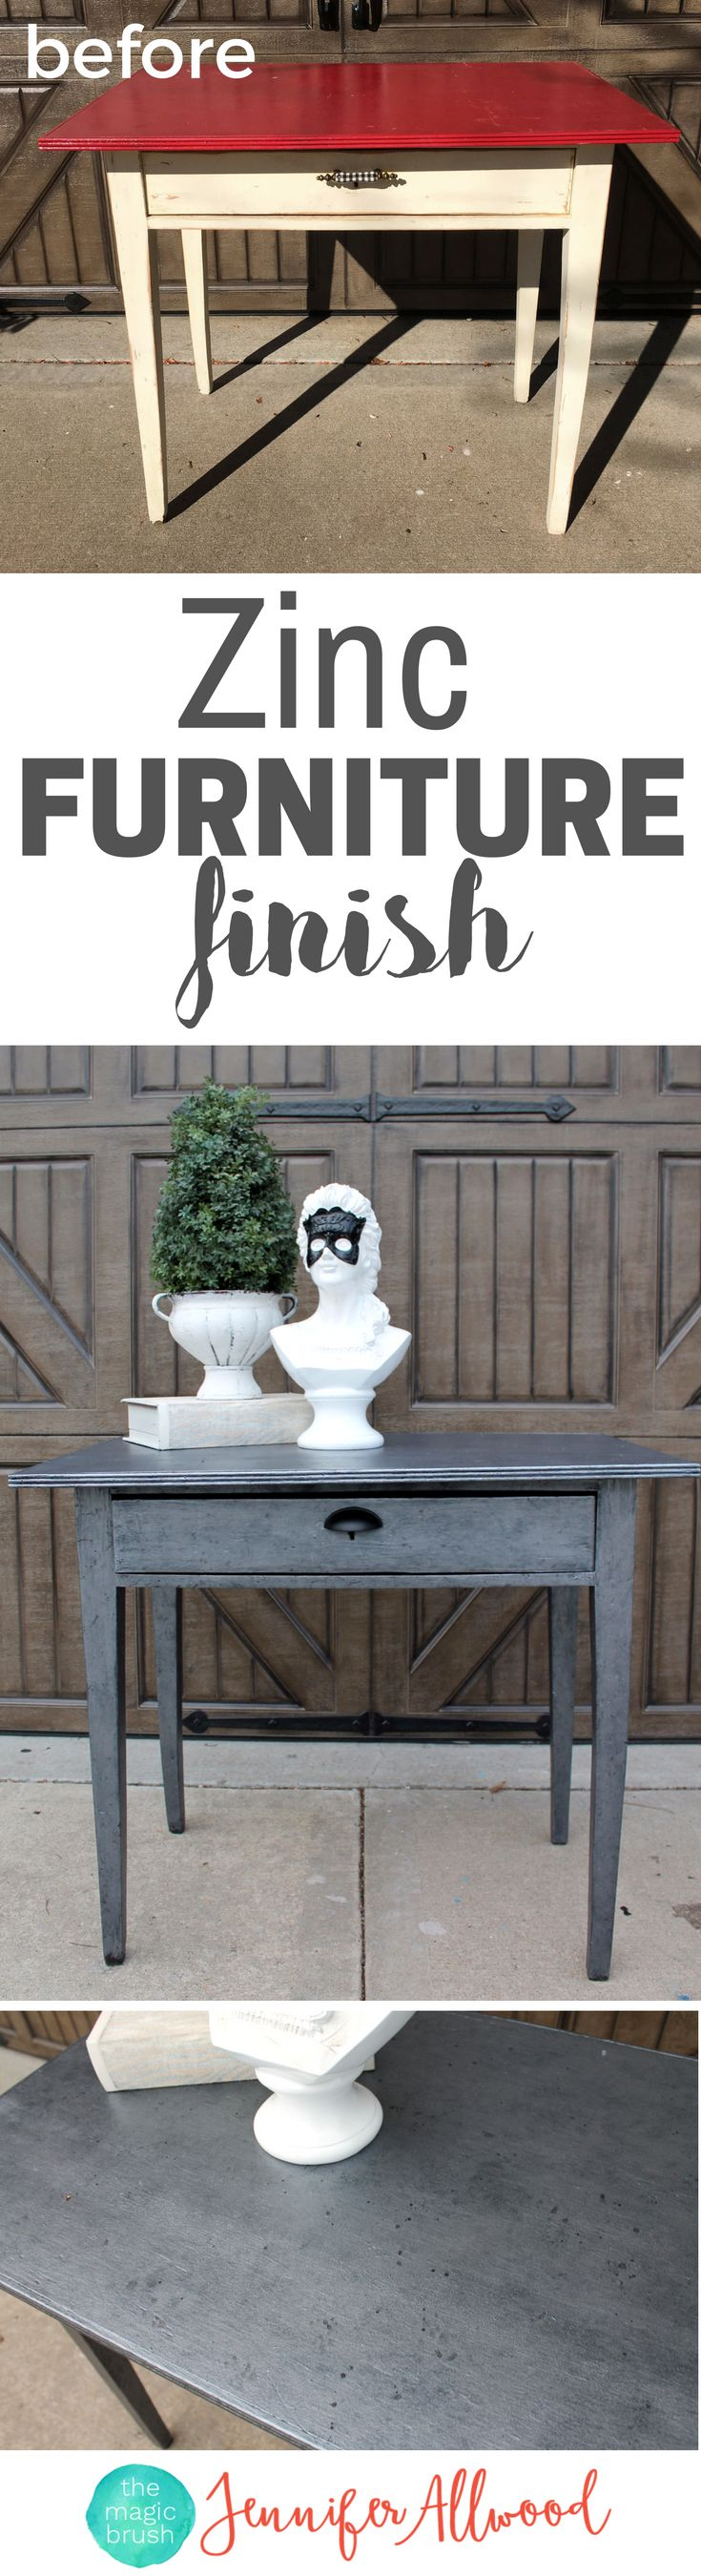 Faux painting furniture ideas - Faux Painting Furniture Ideas 21